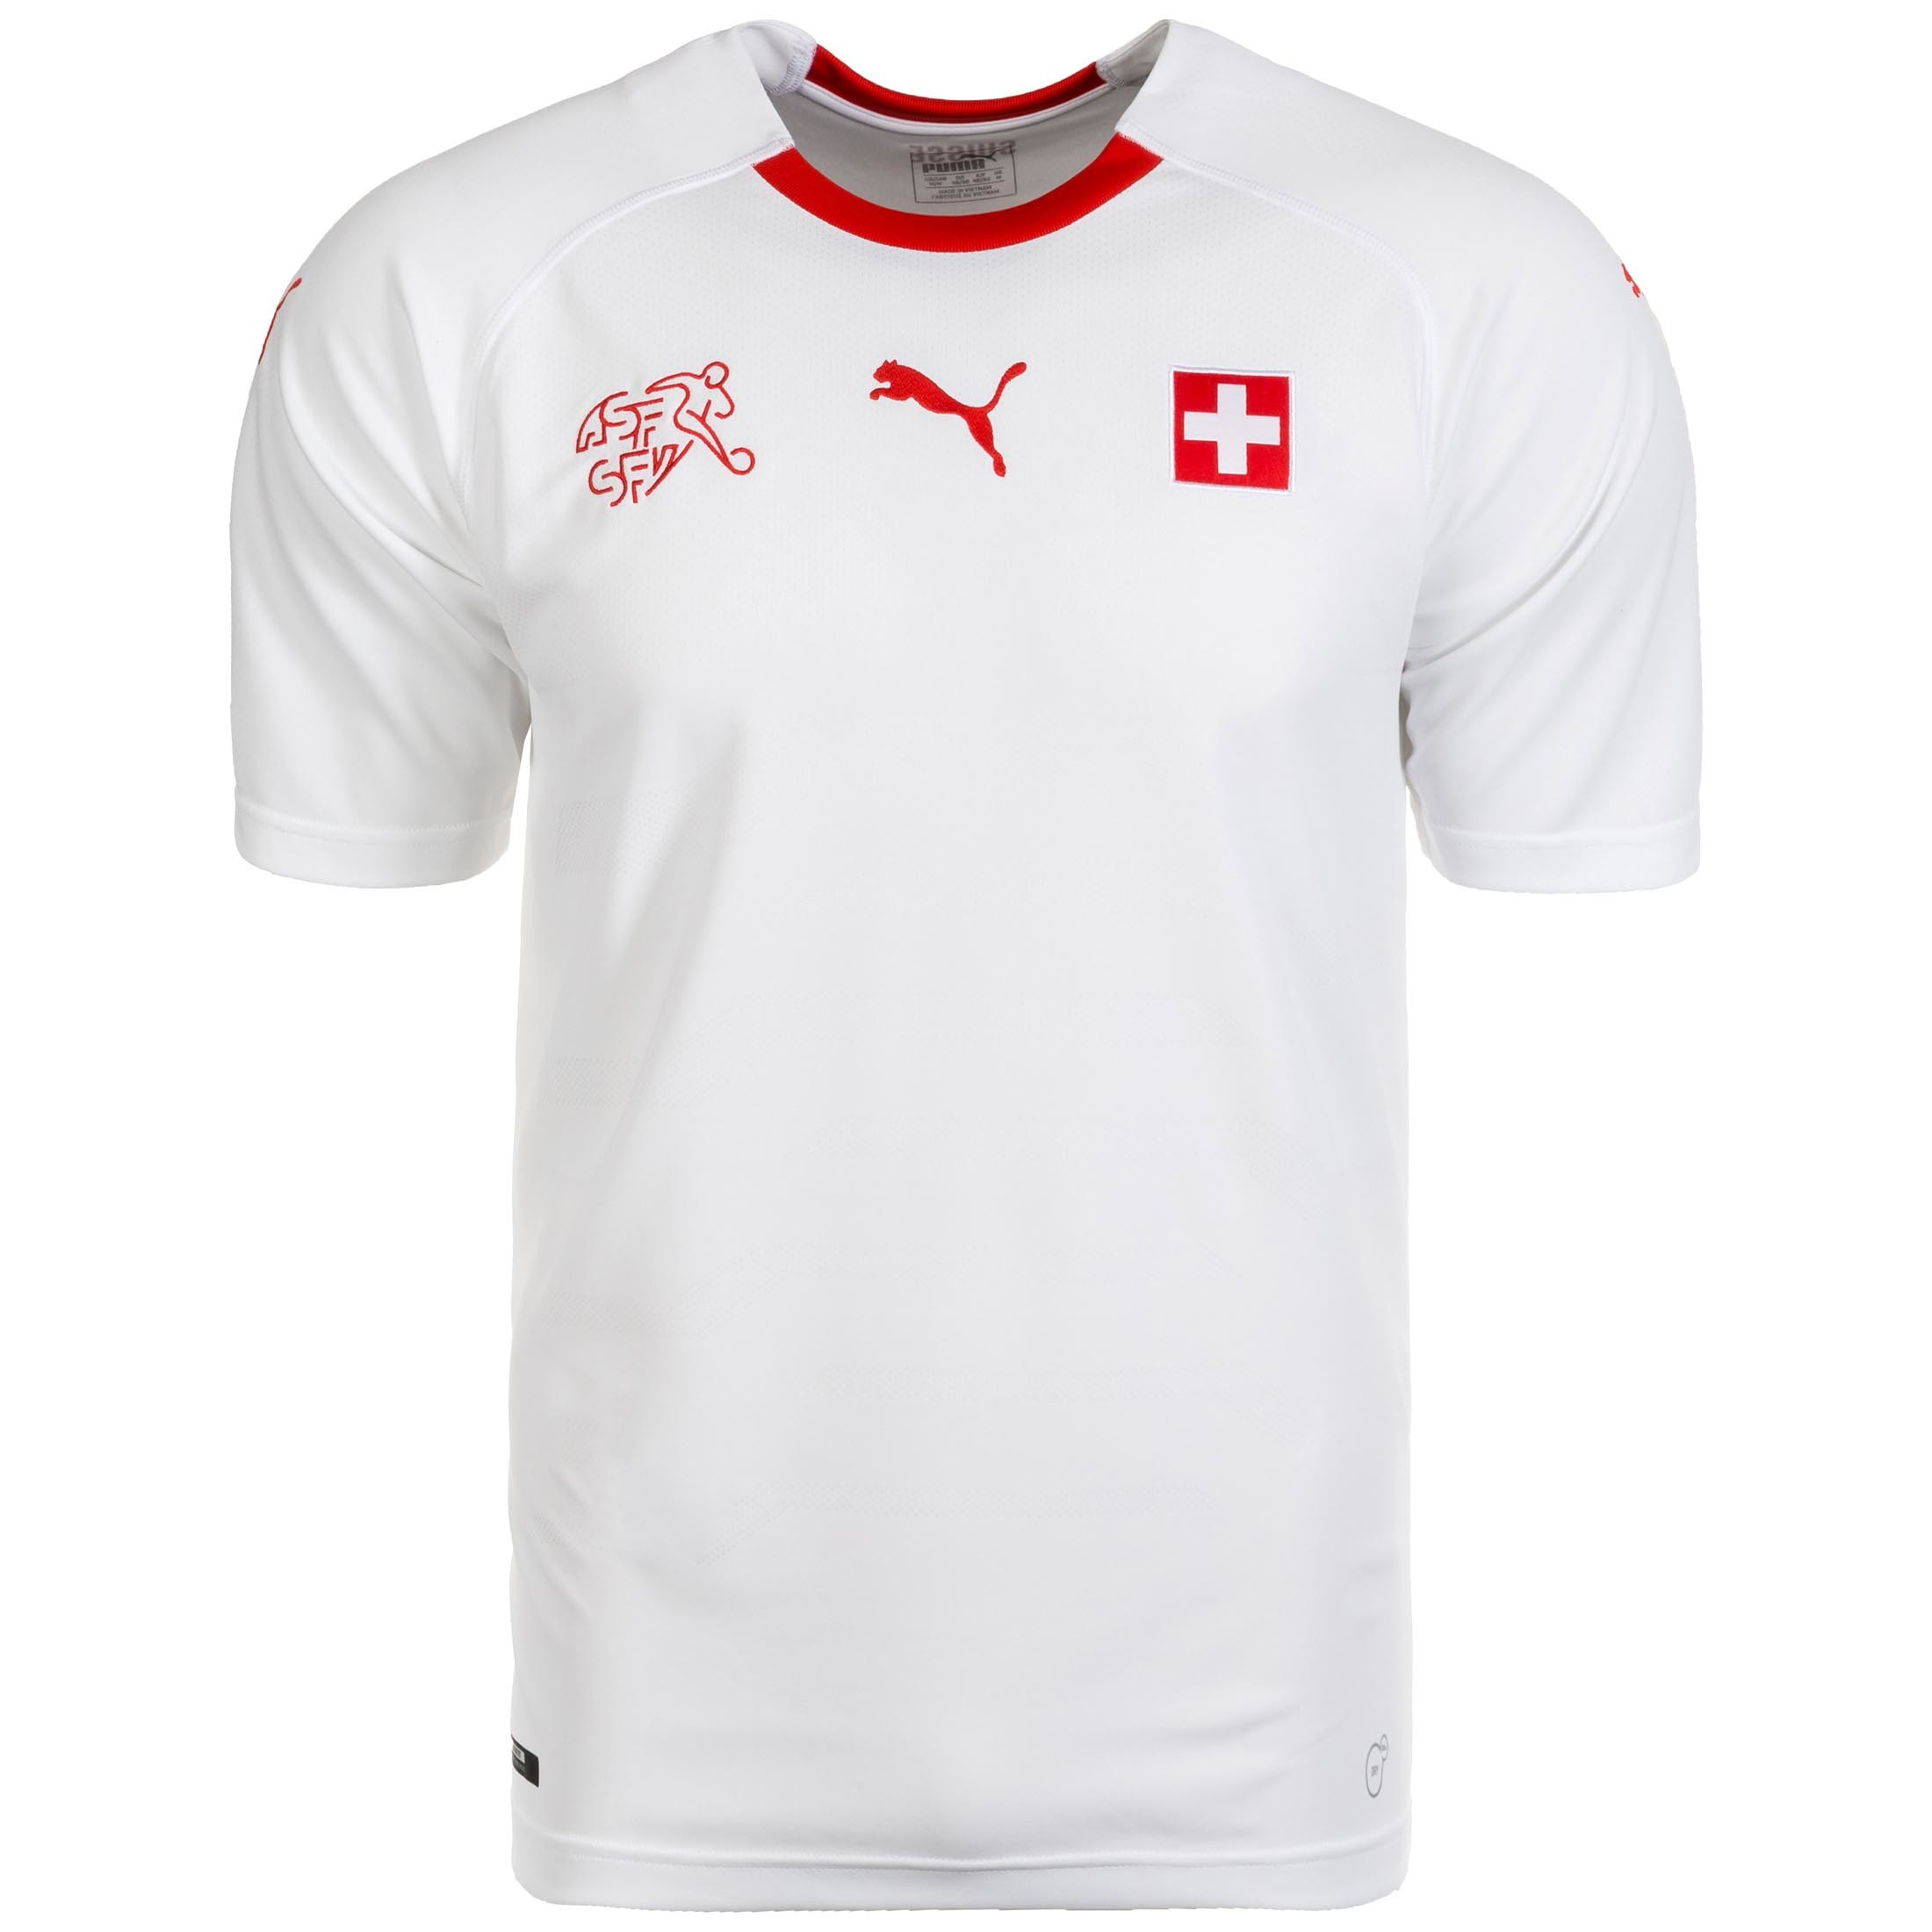 4f8ae484 Cheapest Official England Football Shirt 2014 - DREAMWORKS